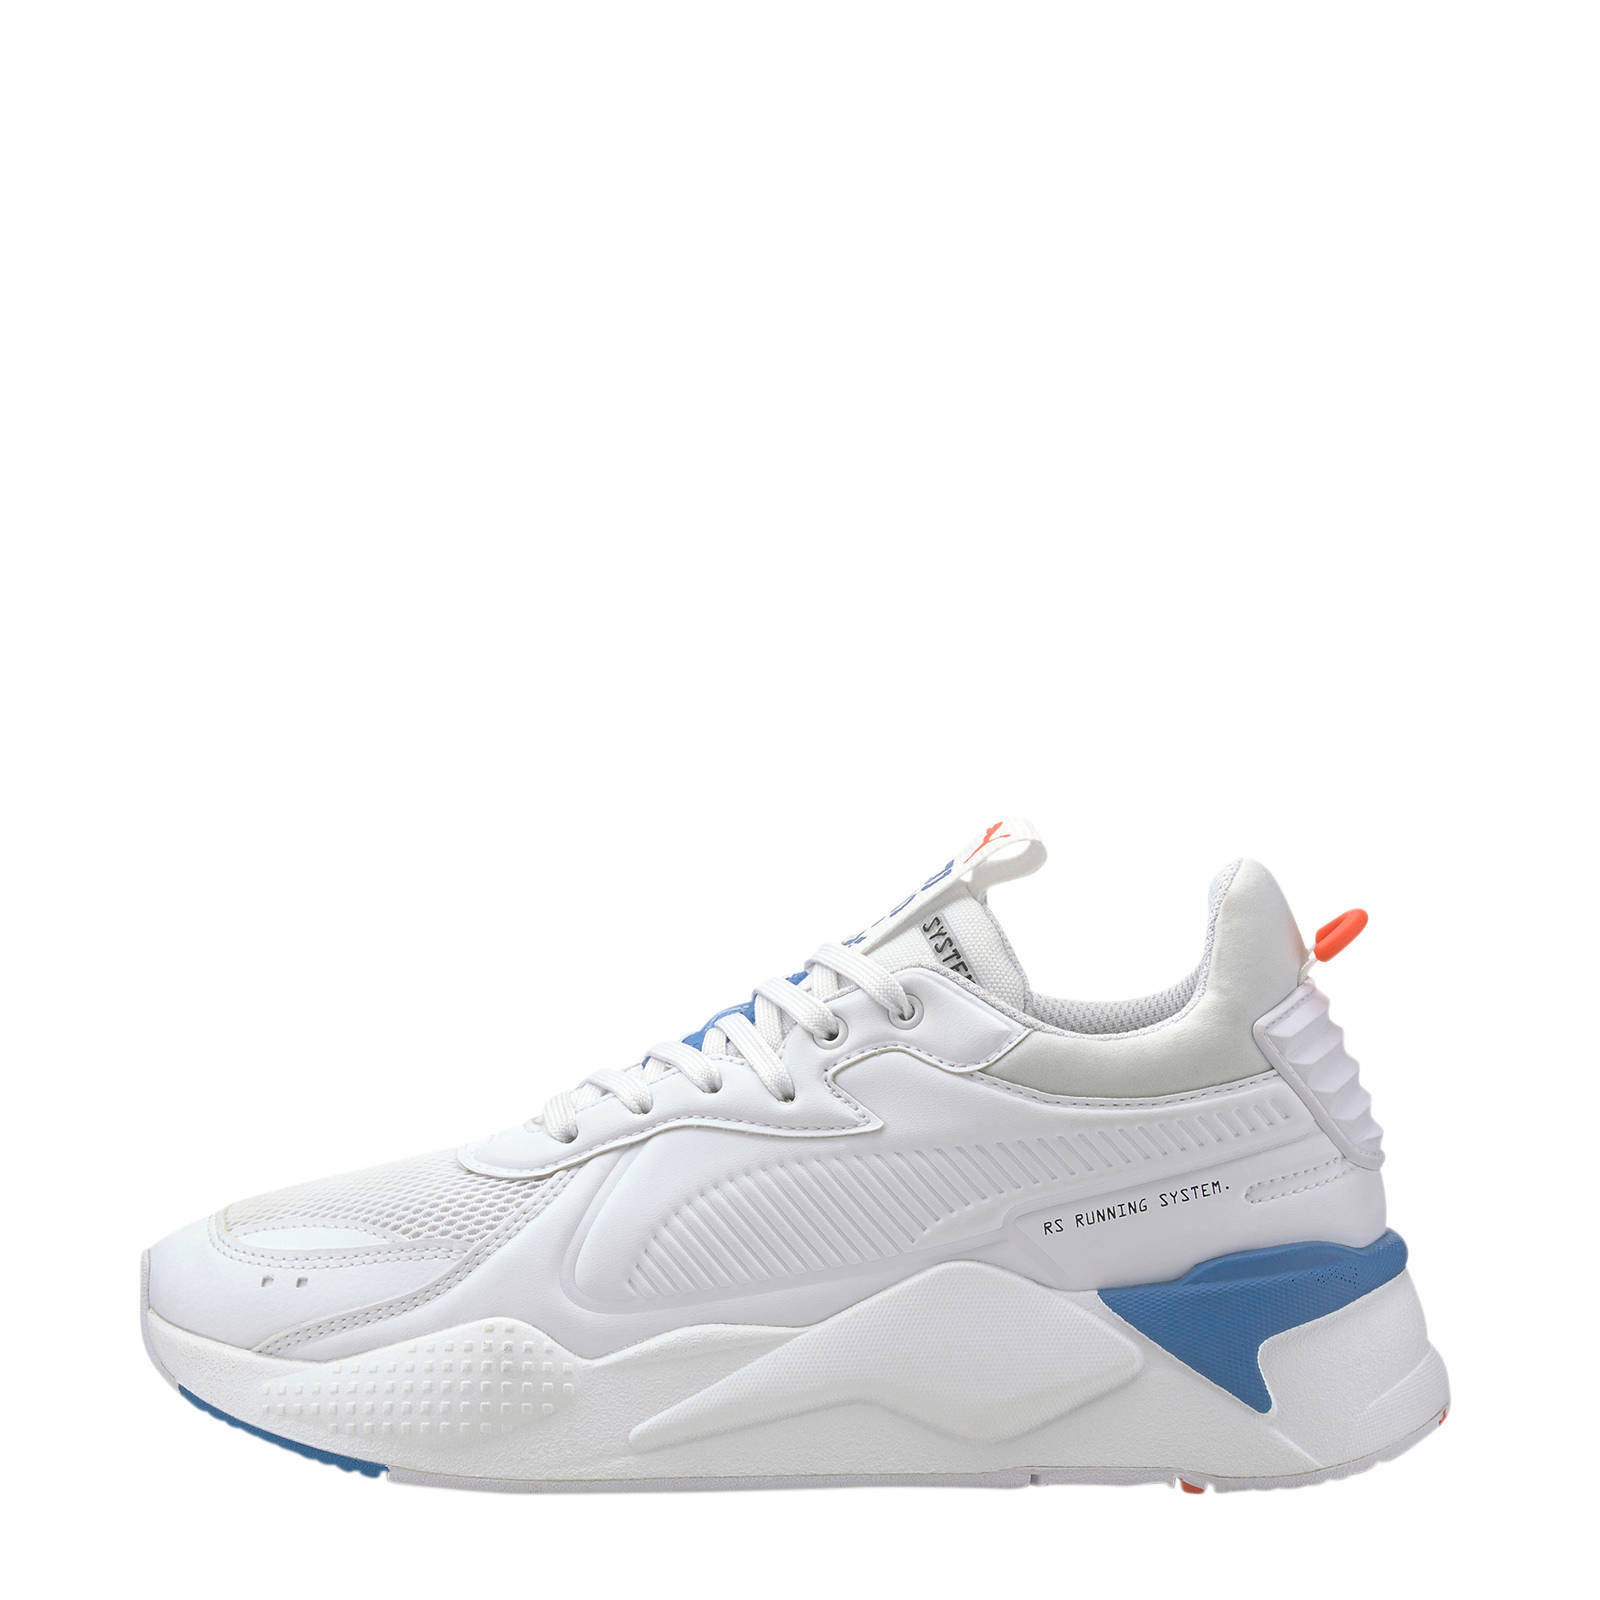 RS-X Master sneakers wit/blauw